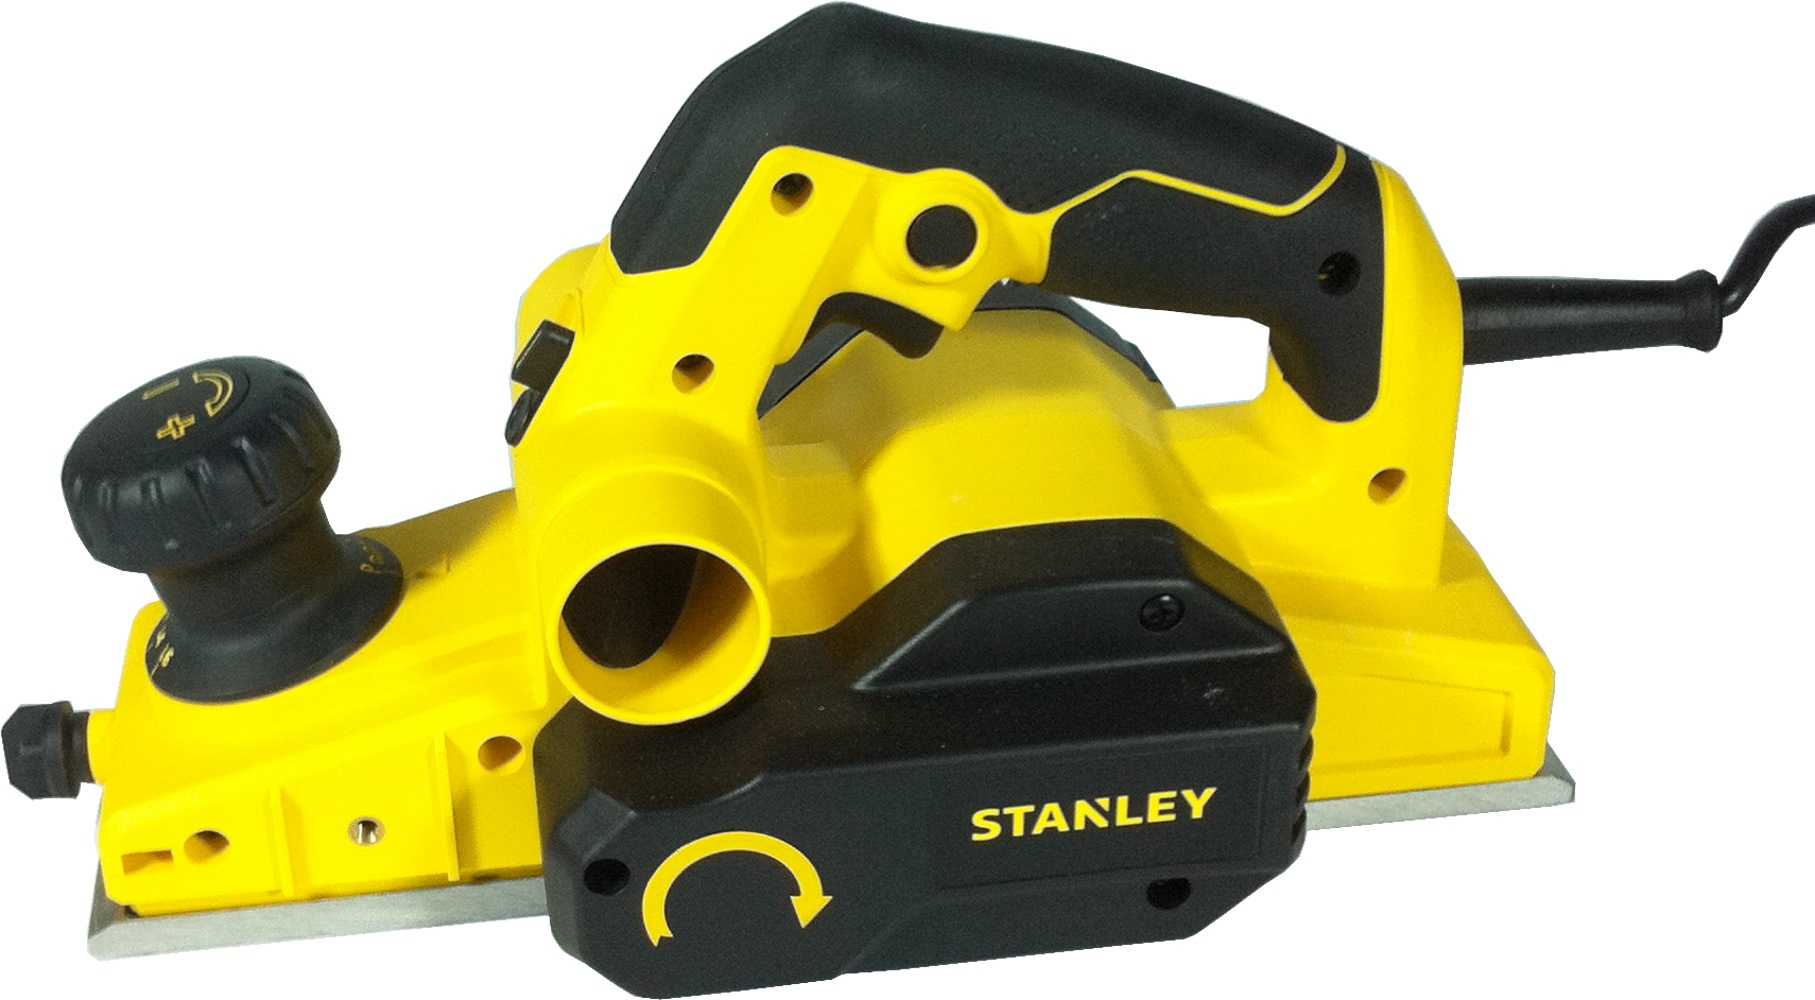 Stanley 82mm 3 1 4 Power Planer 750w Stel630 Corded Planers What Does An Electric Do